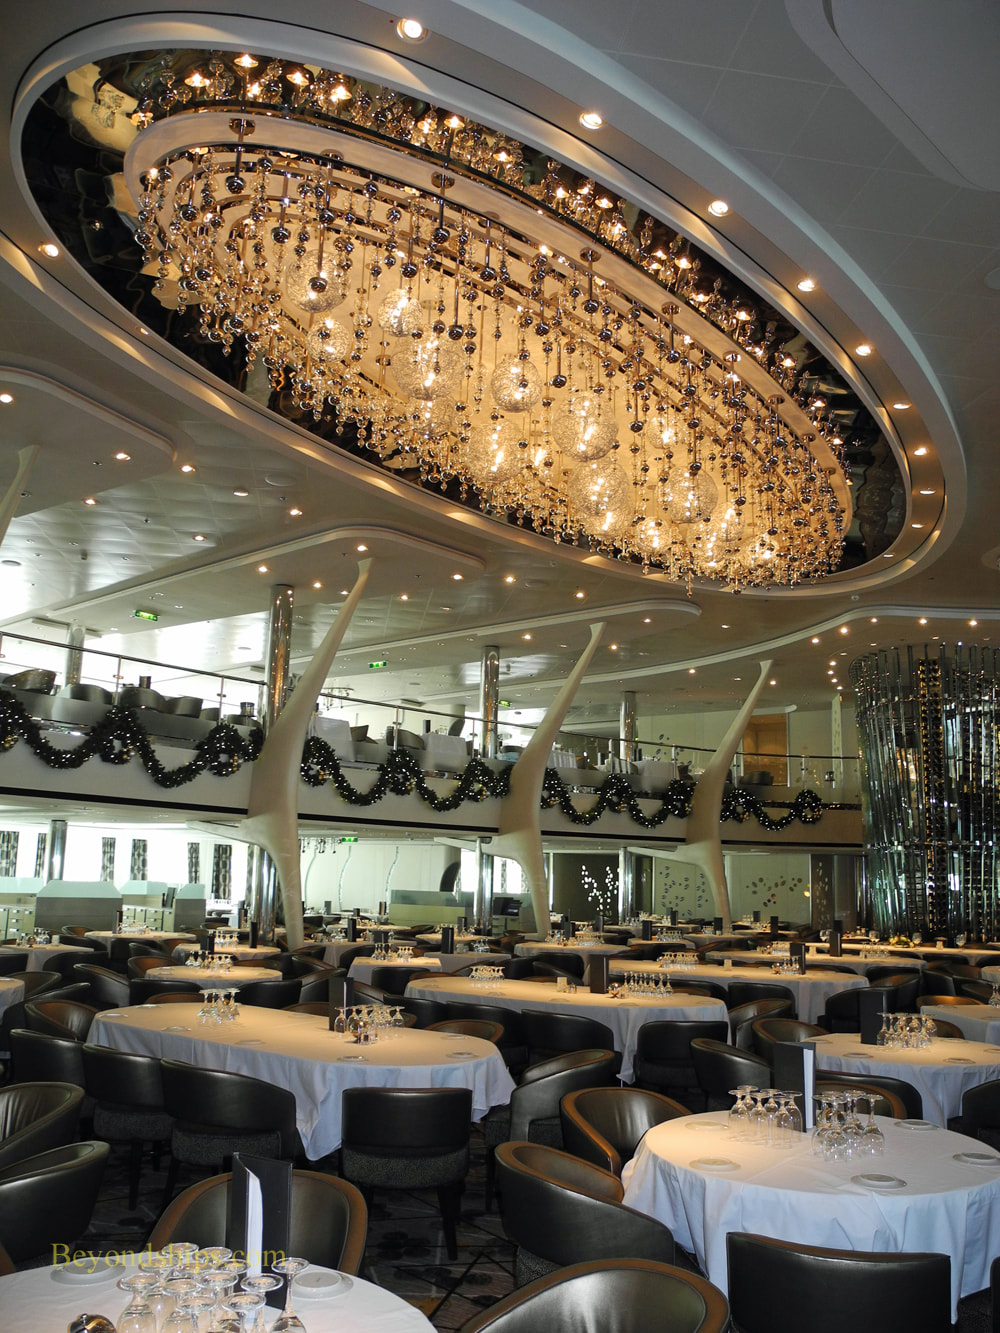 Celebrity Reflection main dining room